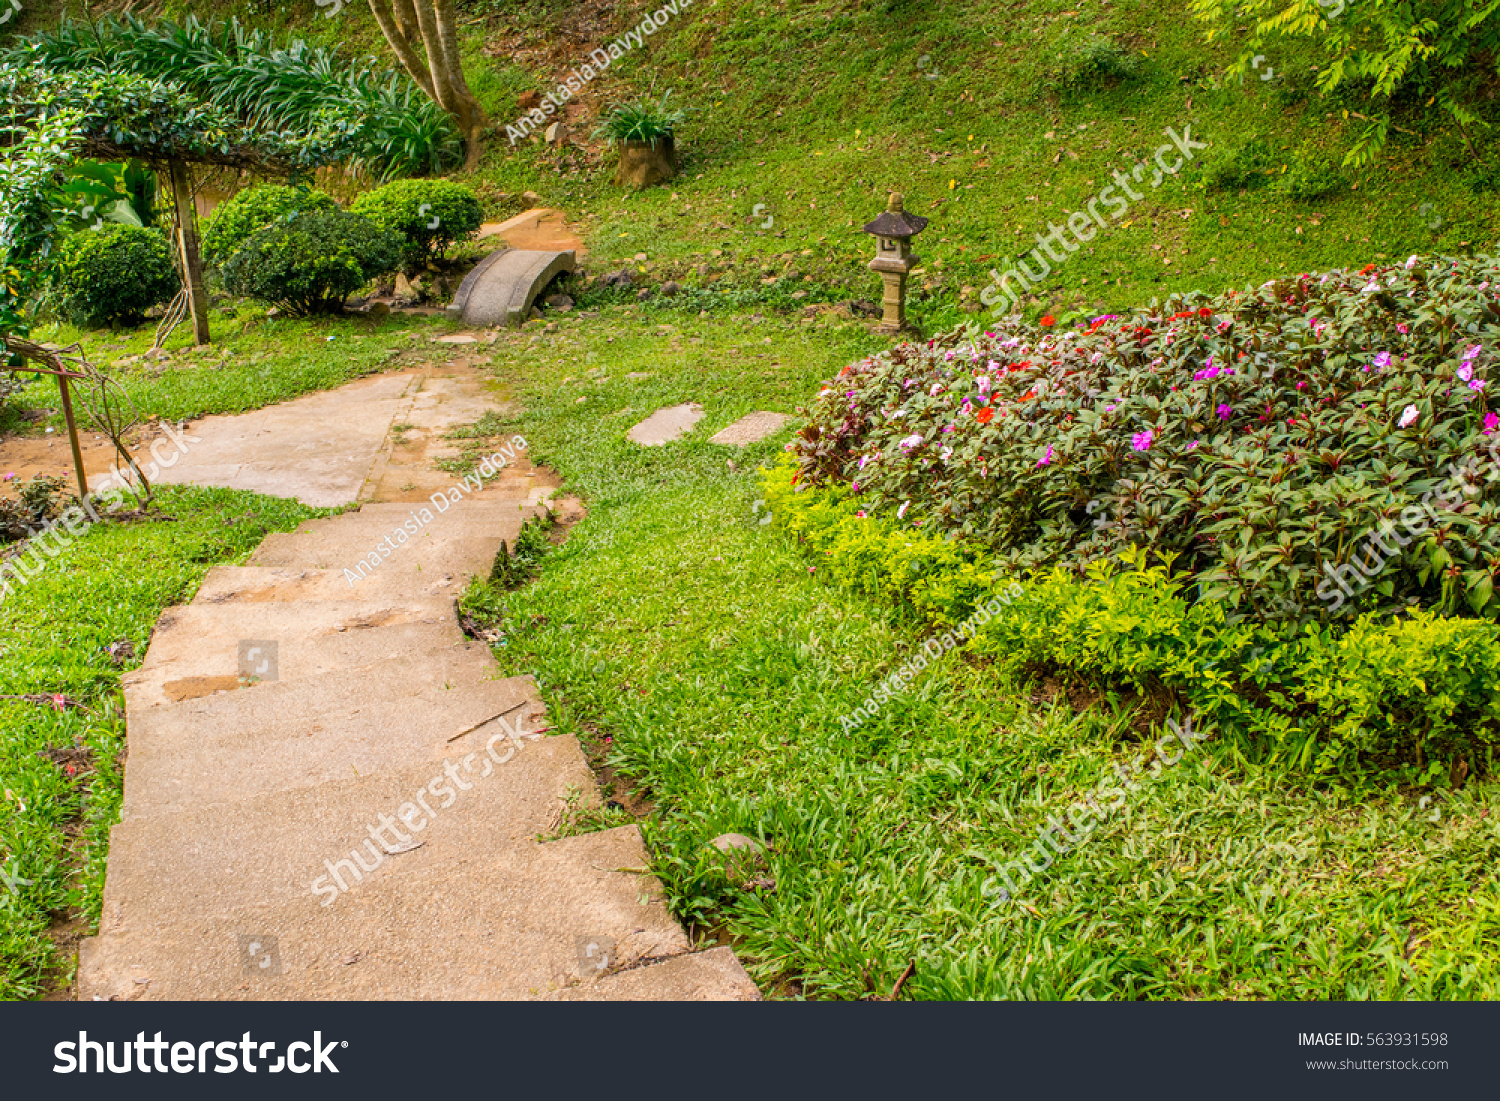 Asian tranquil garden stone path pond stock photo for Tranquil garden designs